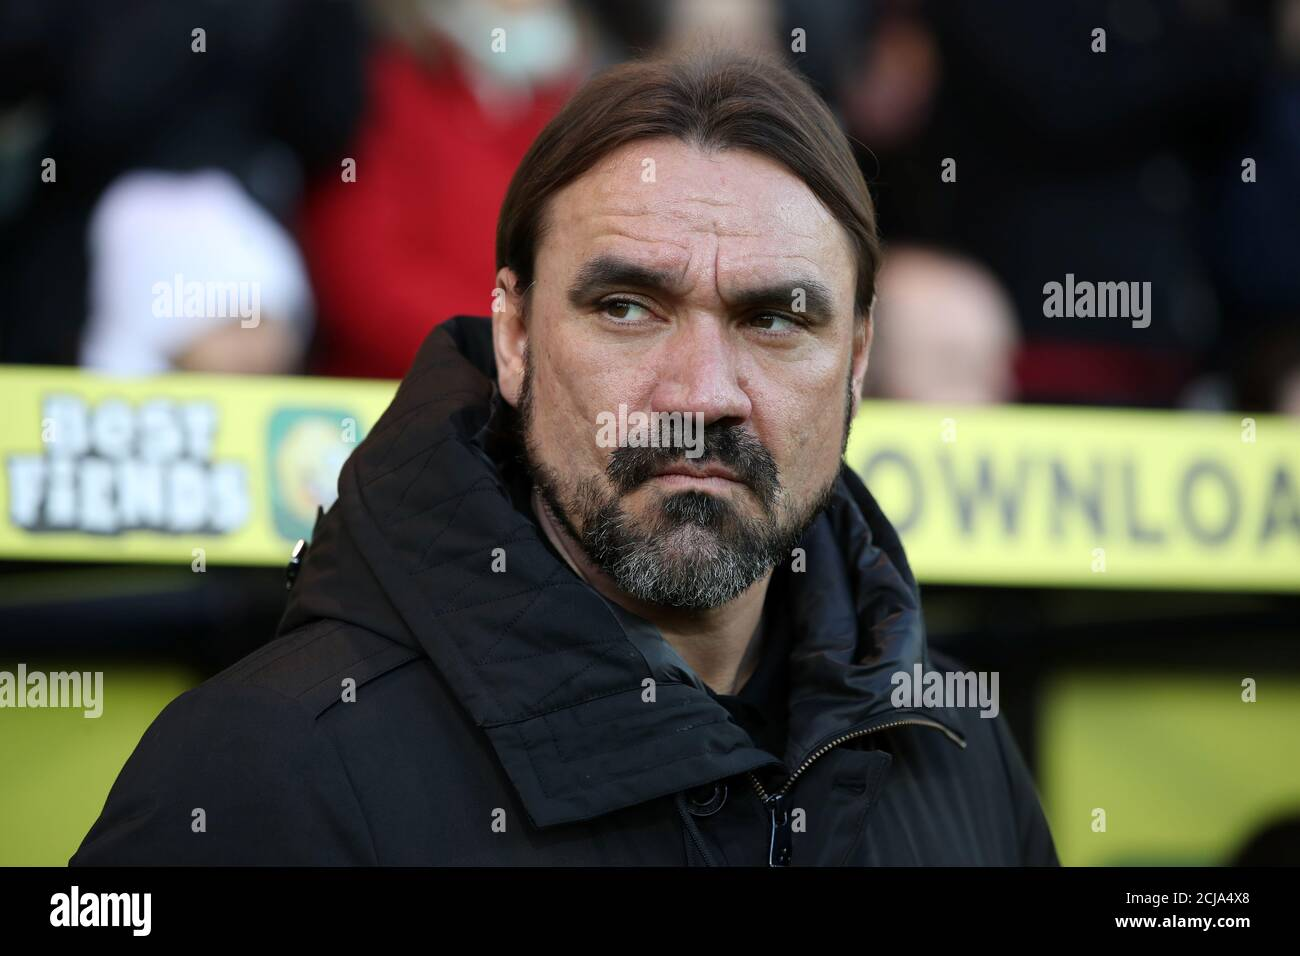 Norwich city new manager betting bet on soldier blood sport download